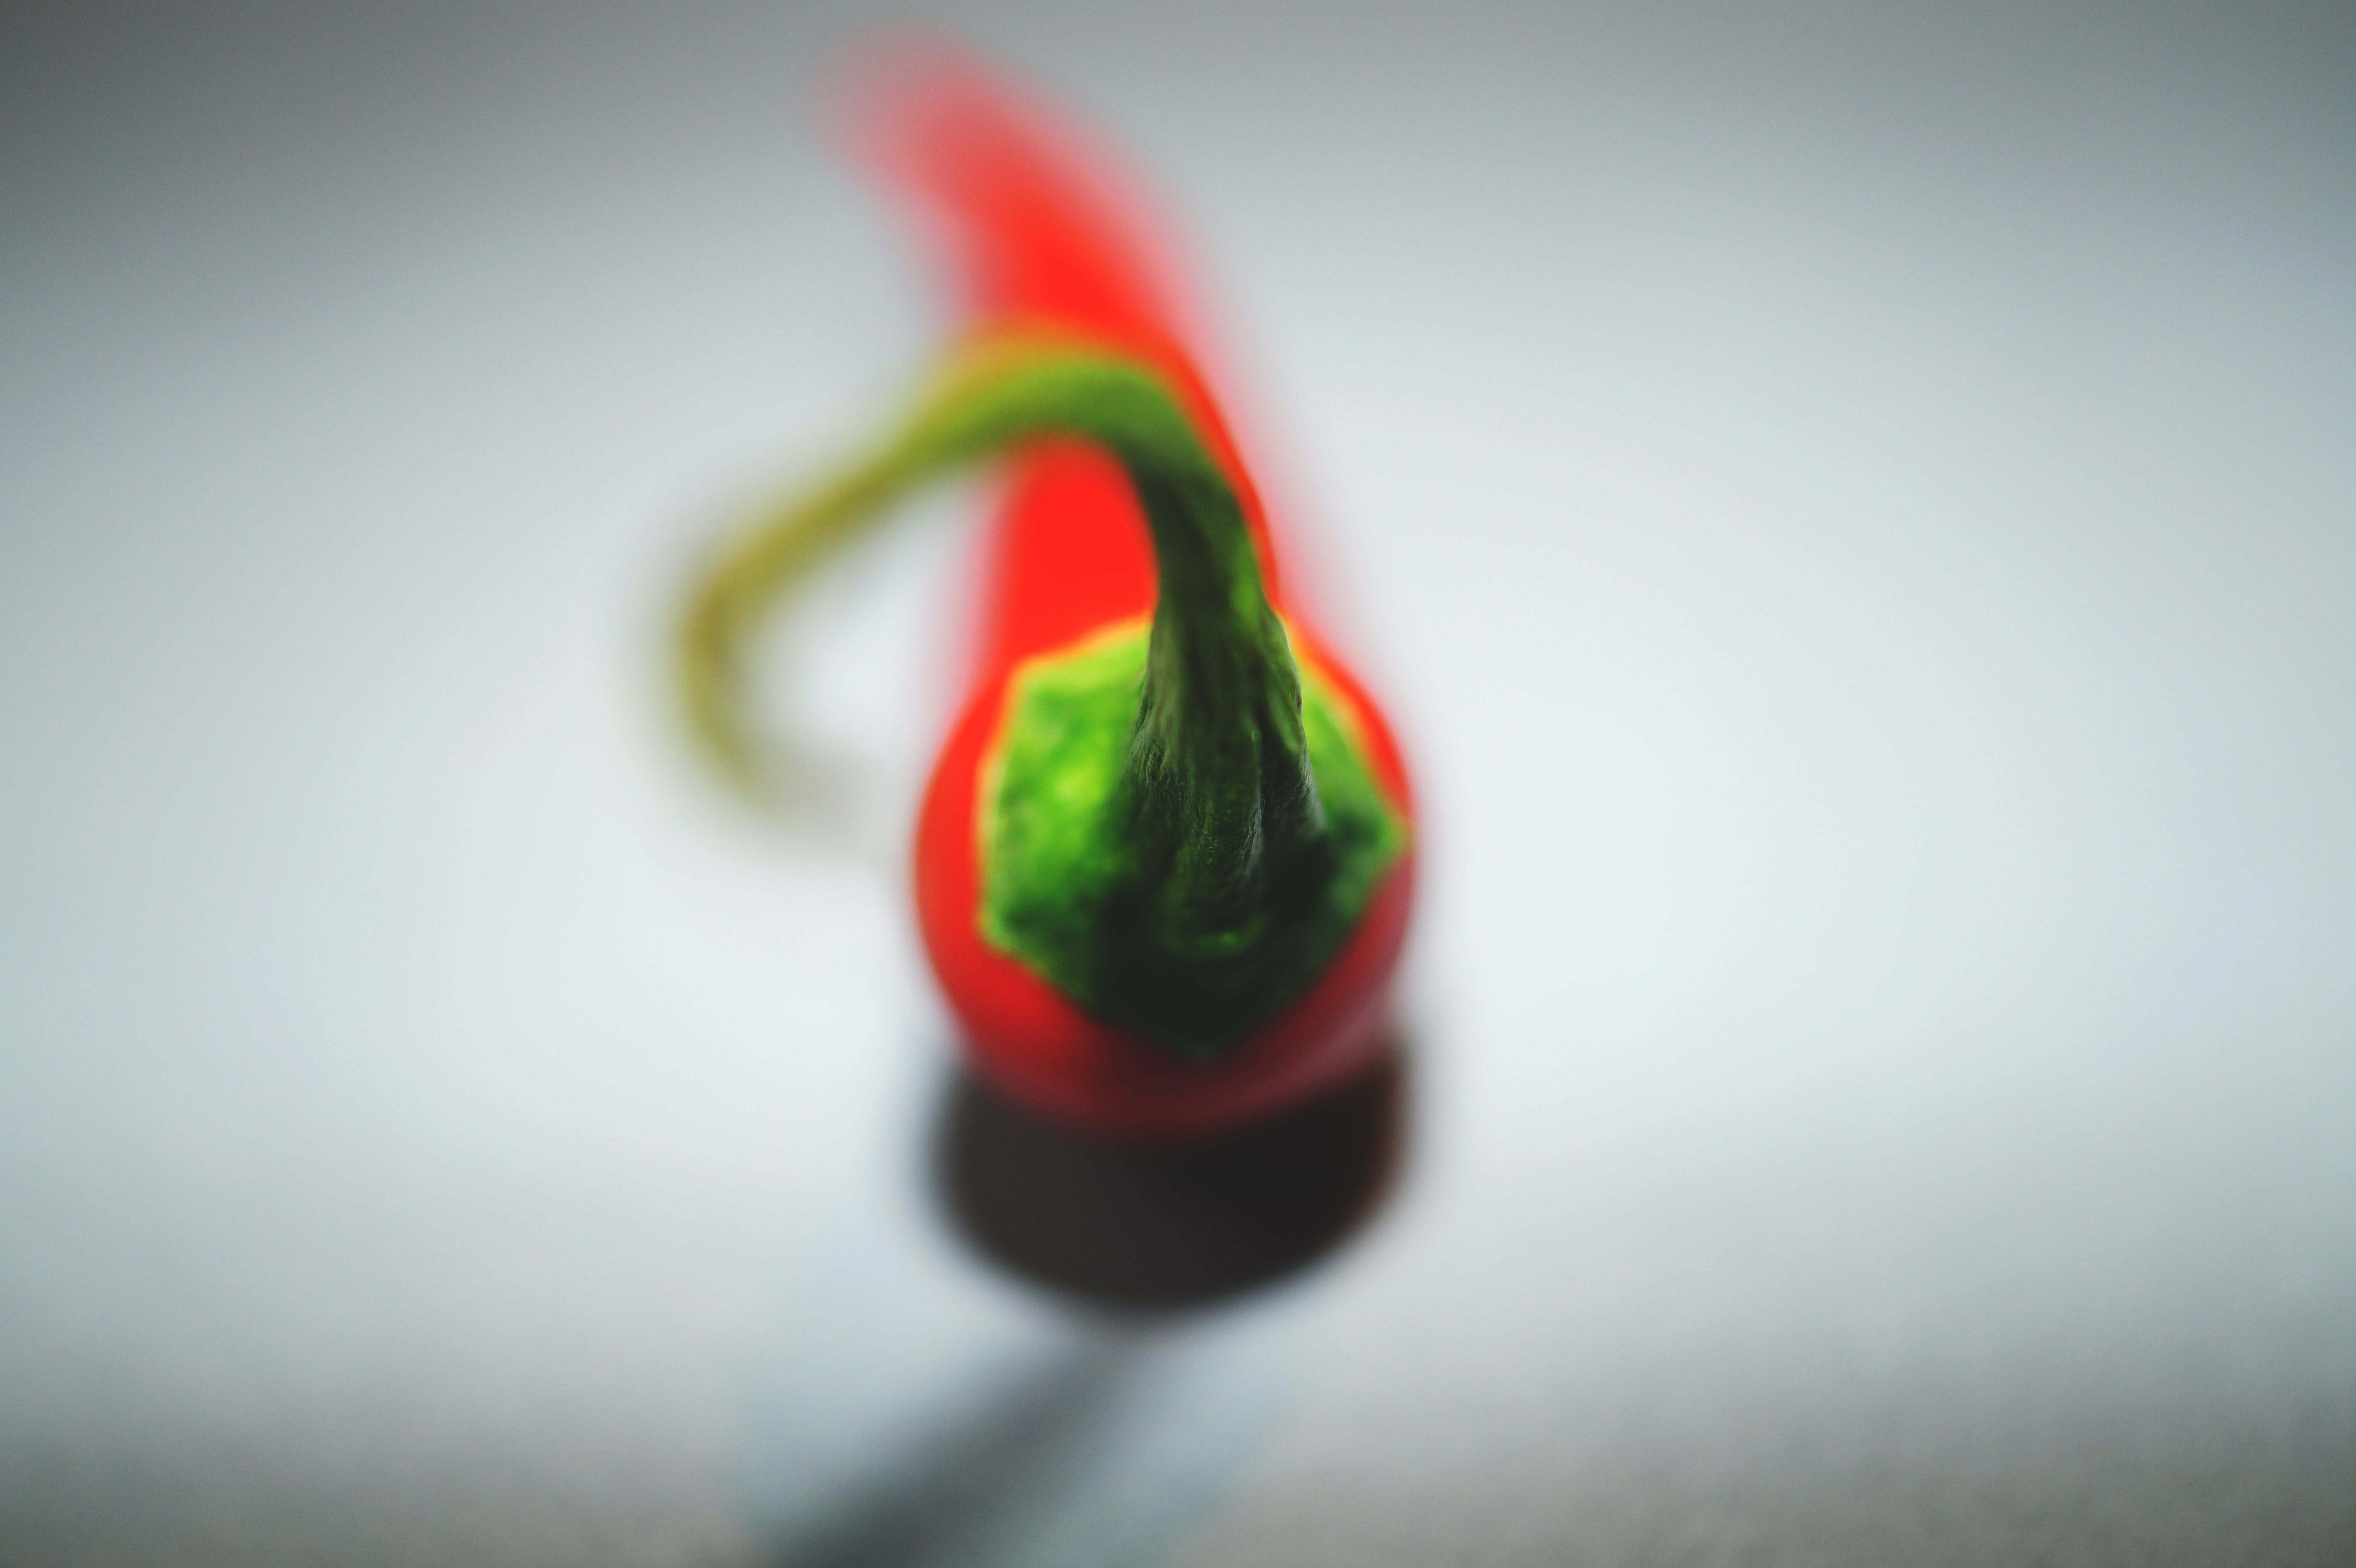 Selective Focus Photography of Red Chili on White Surface